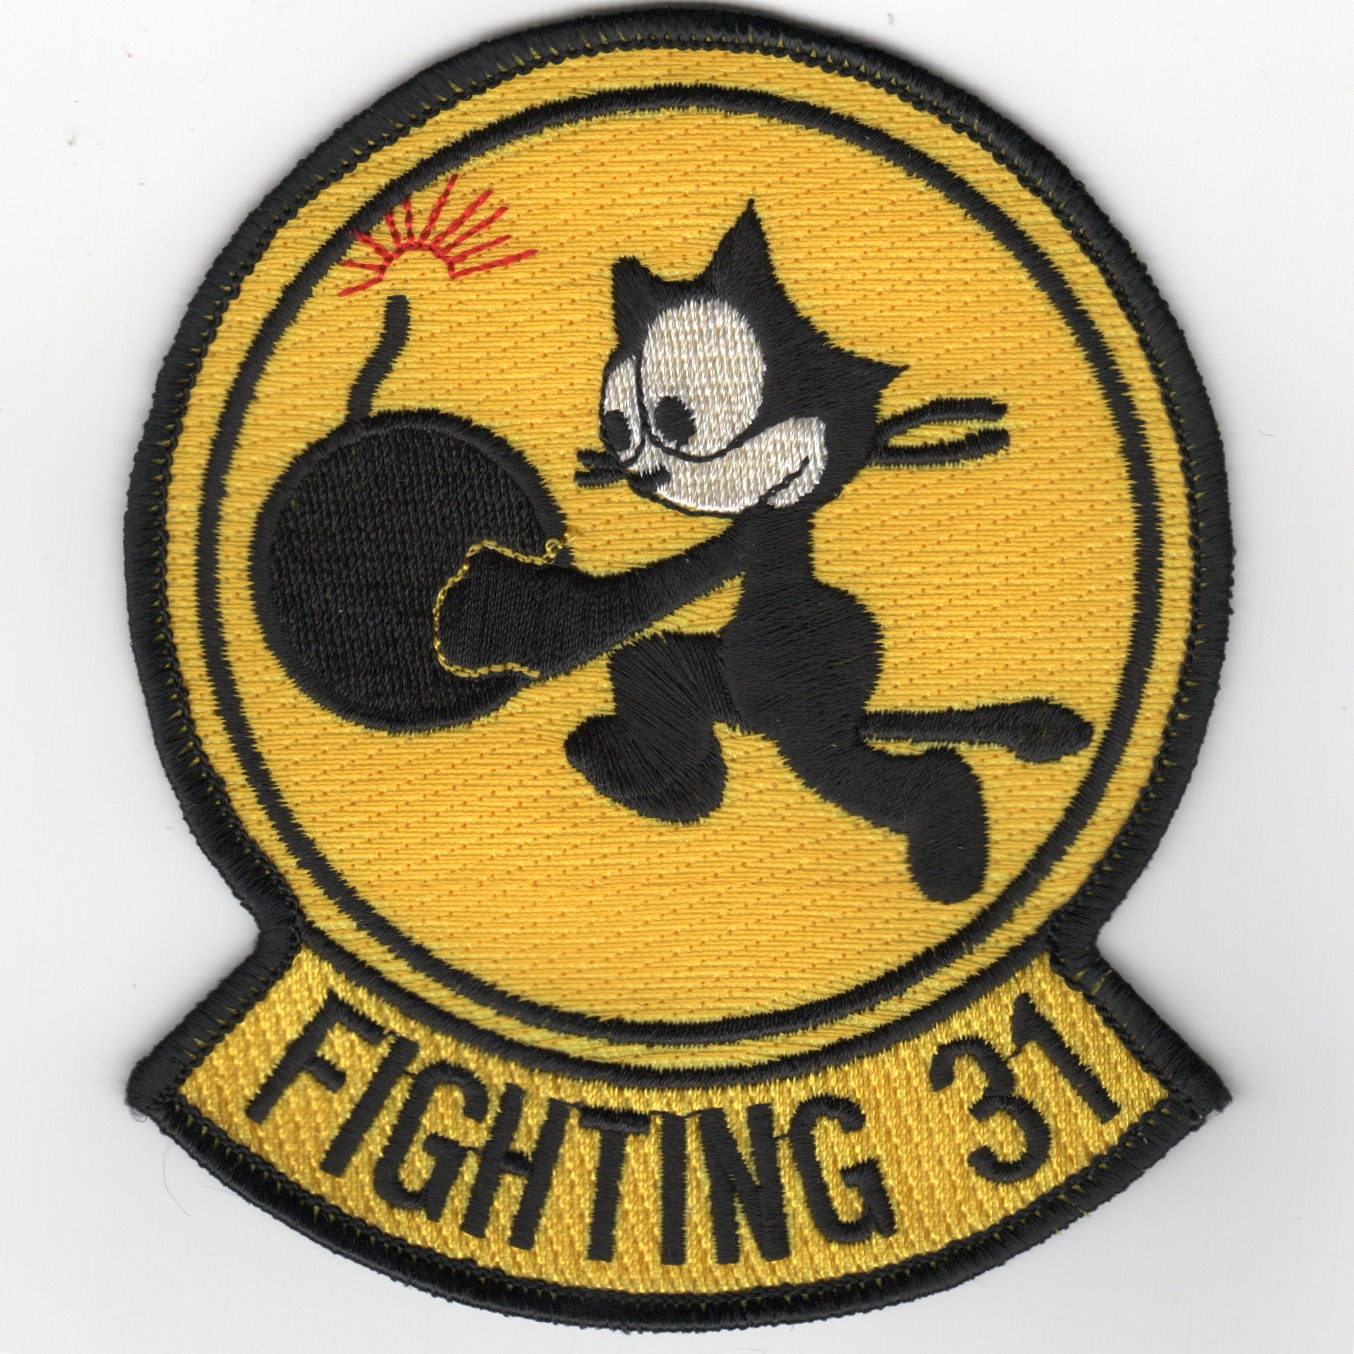 VF-31 Squadron Patch